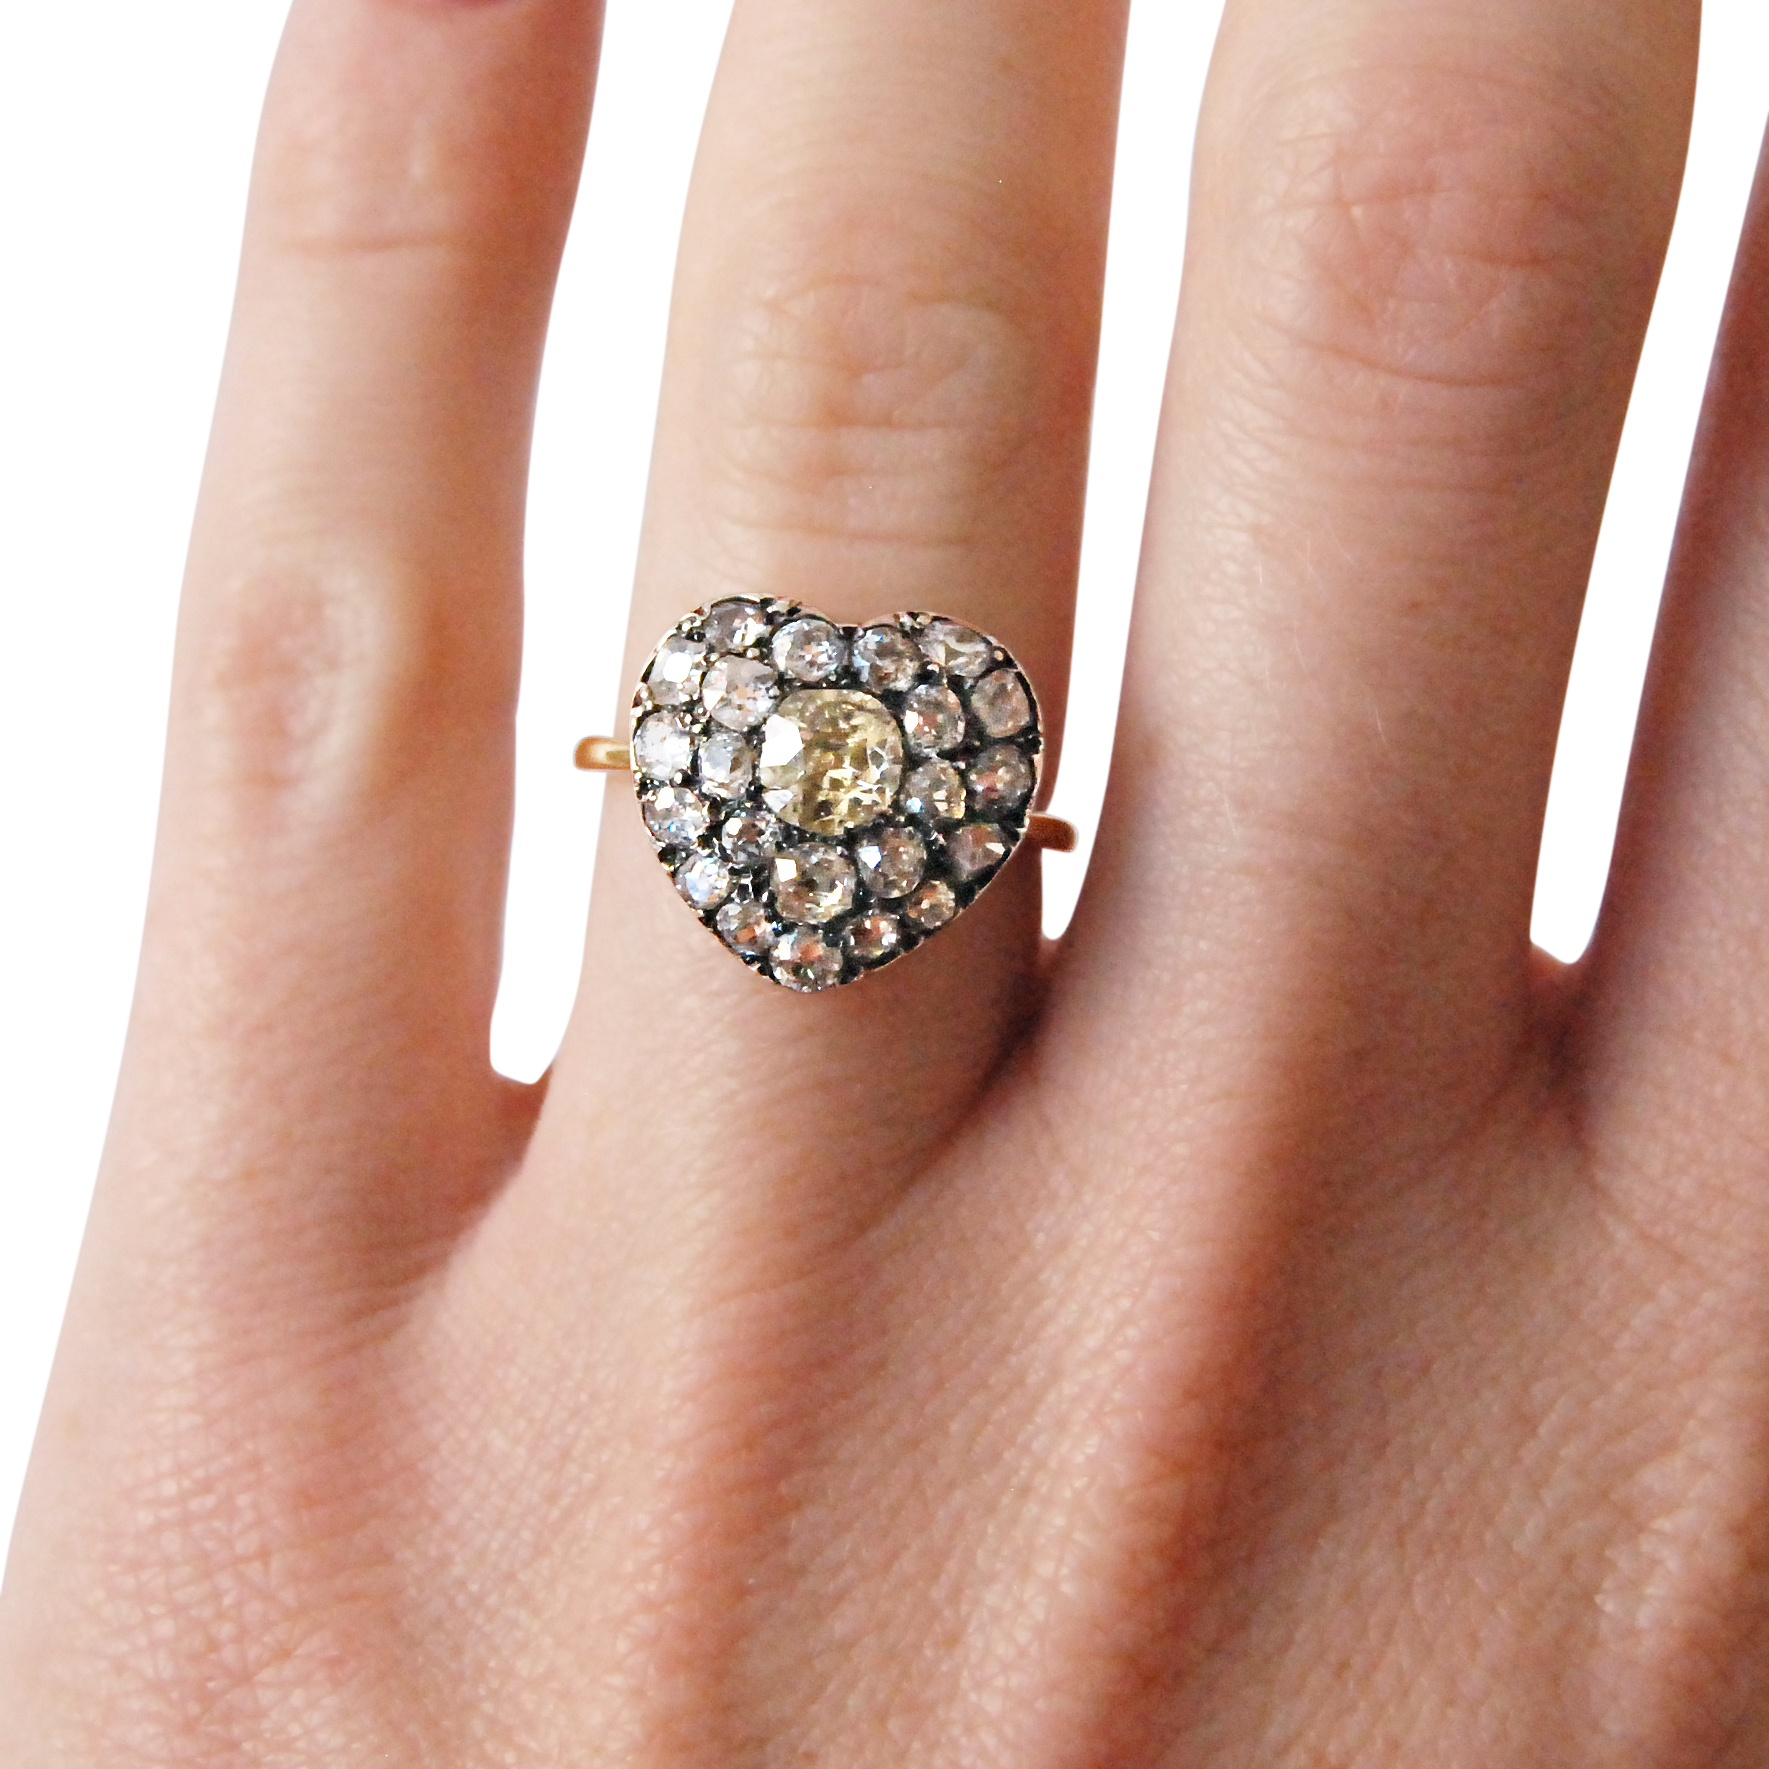 Old-cut diamond antique style heart-shaped cluster ring hand shot